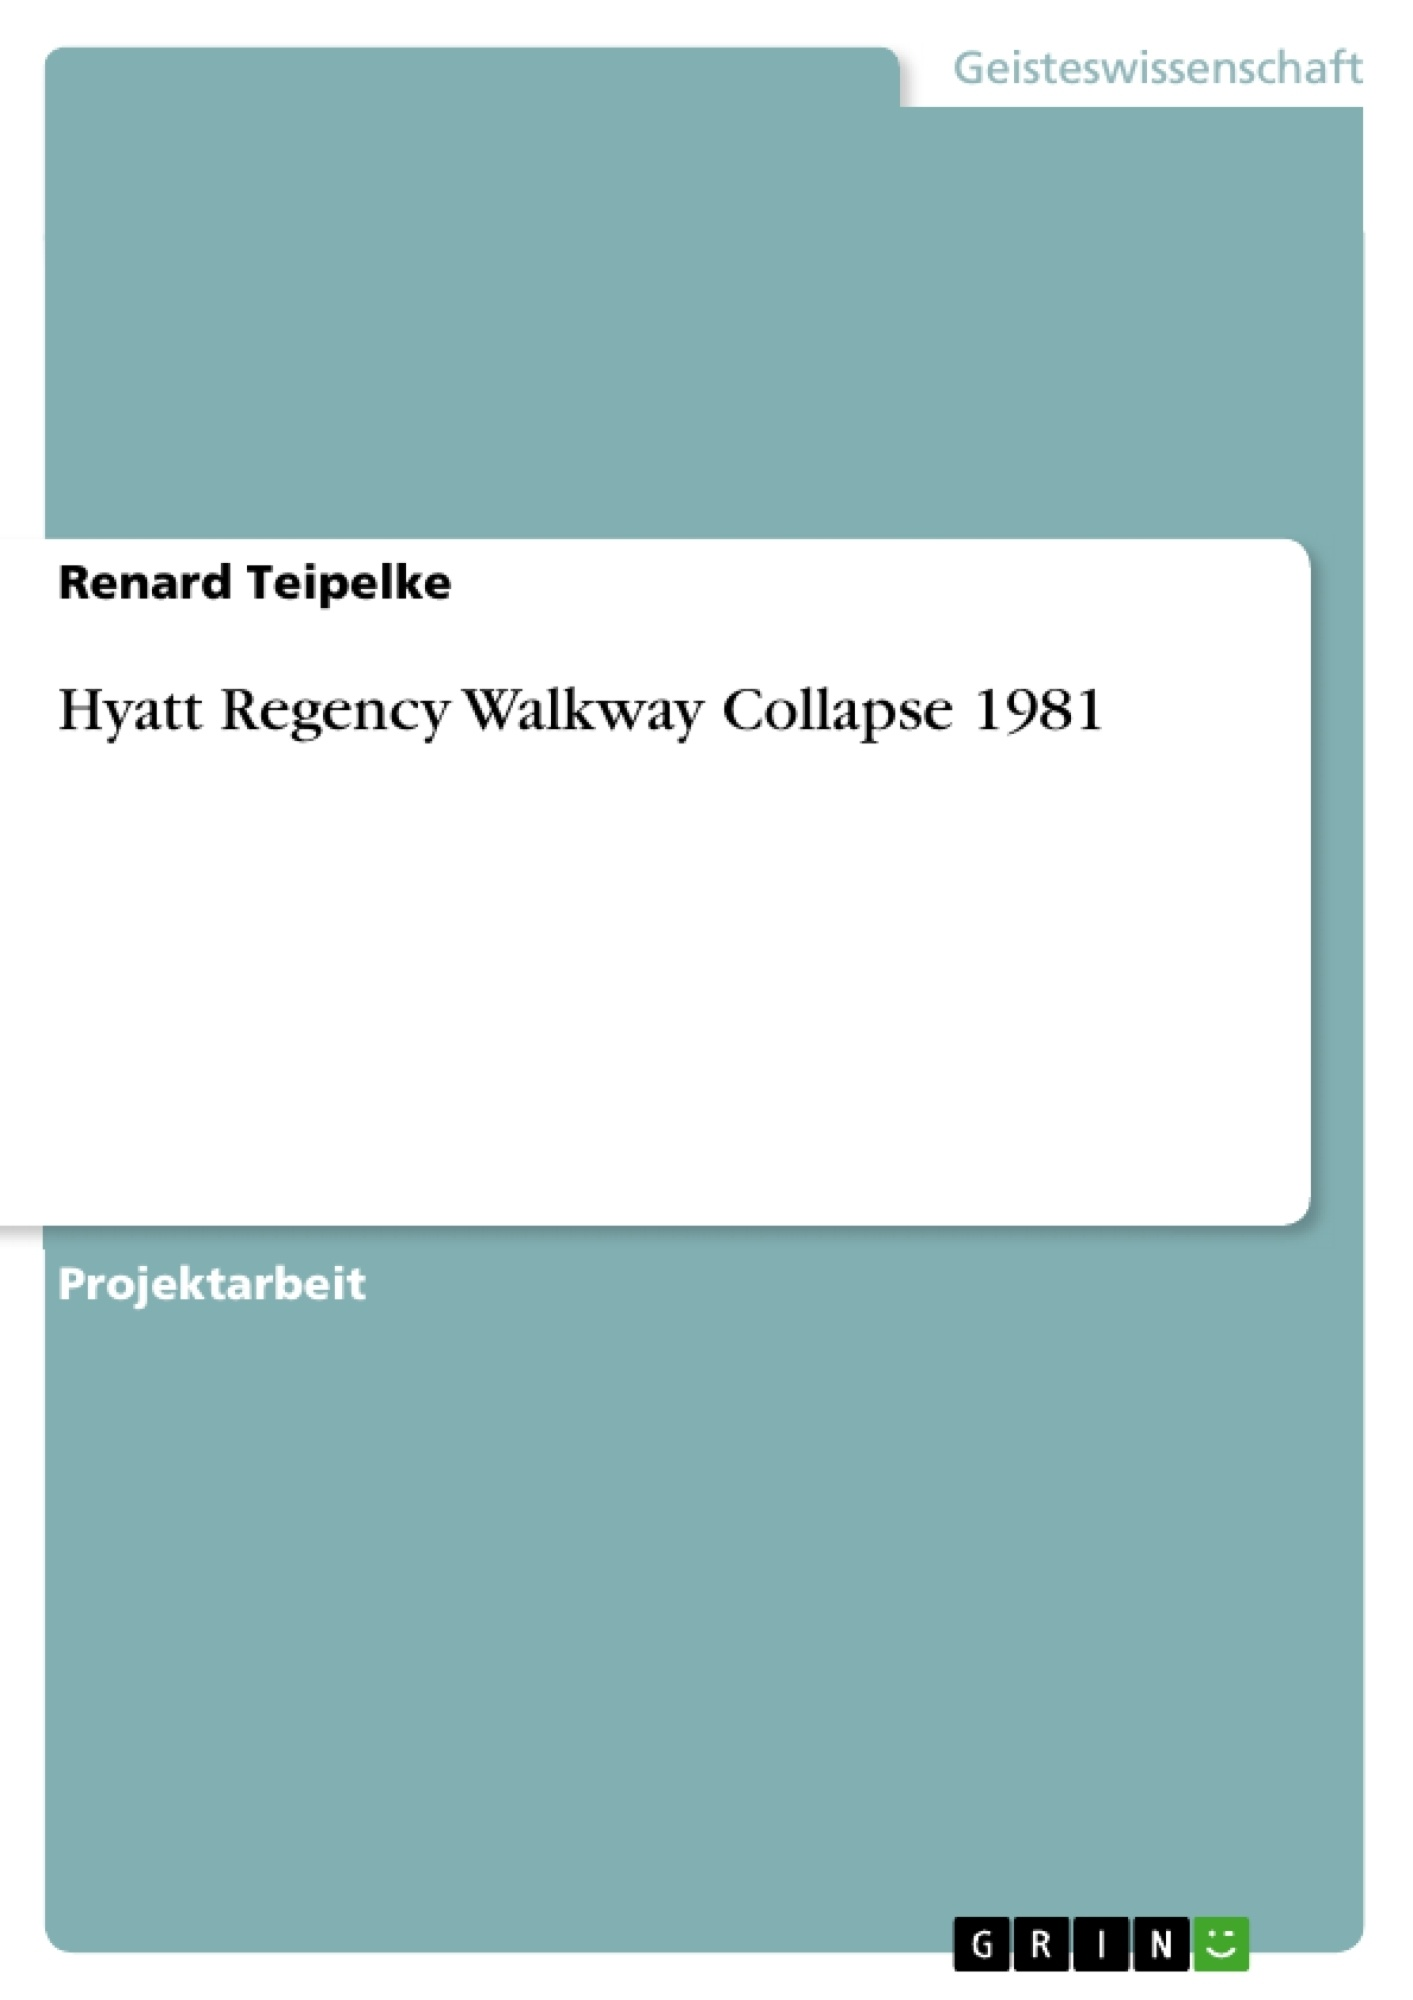 Titel: Hyatt Regency Walkway Collapse 1981